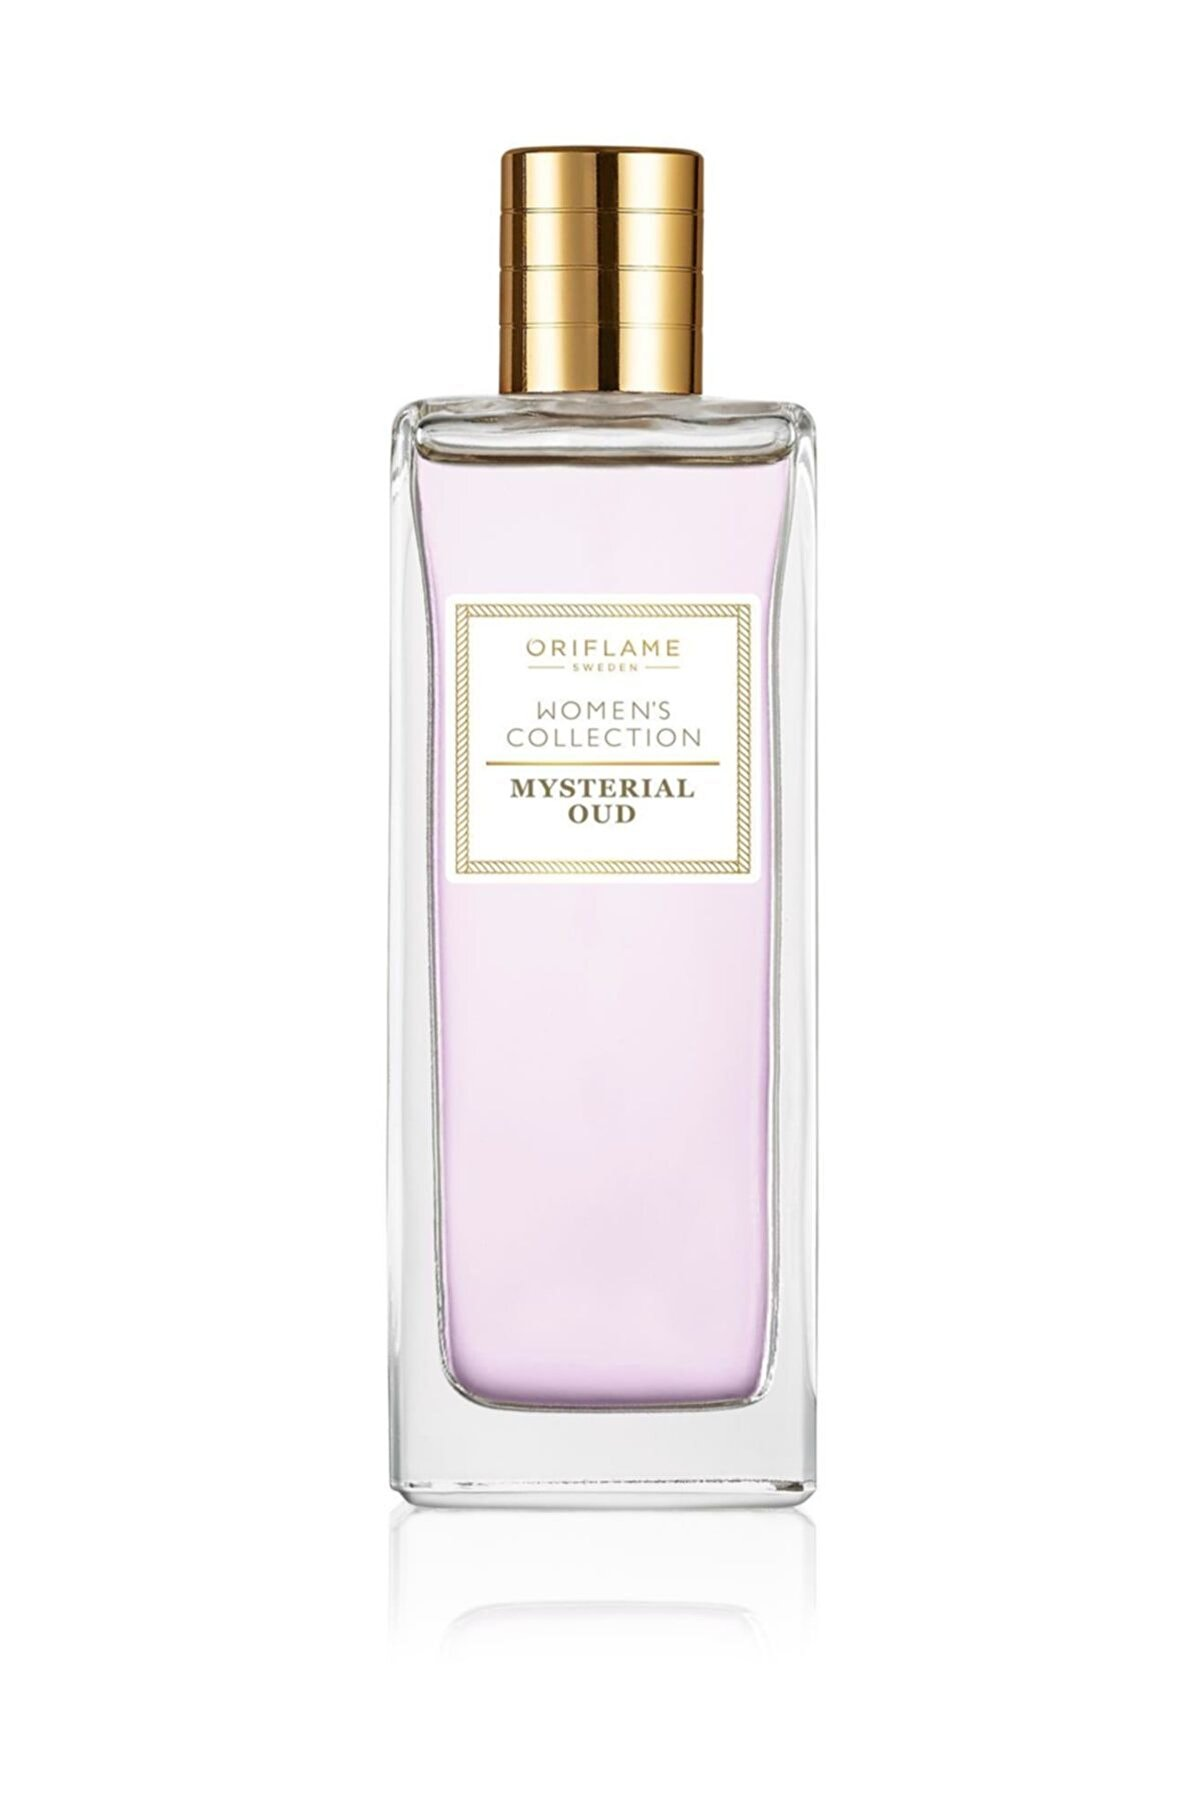 Oriflame Women's Collection Mysterial Oud Edt  34361 50 ml.